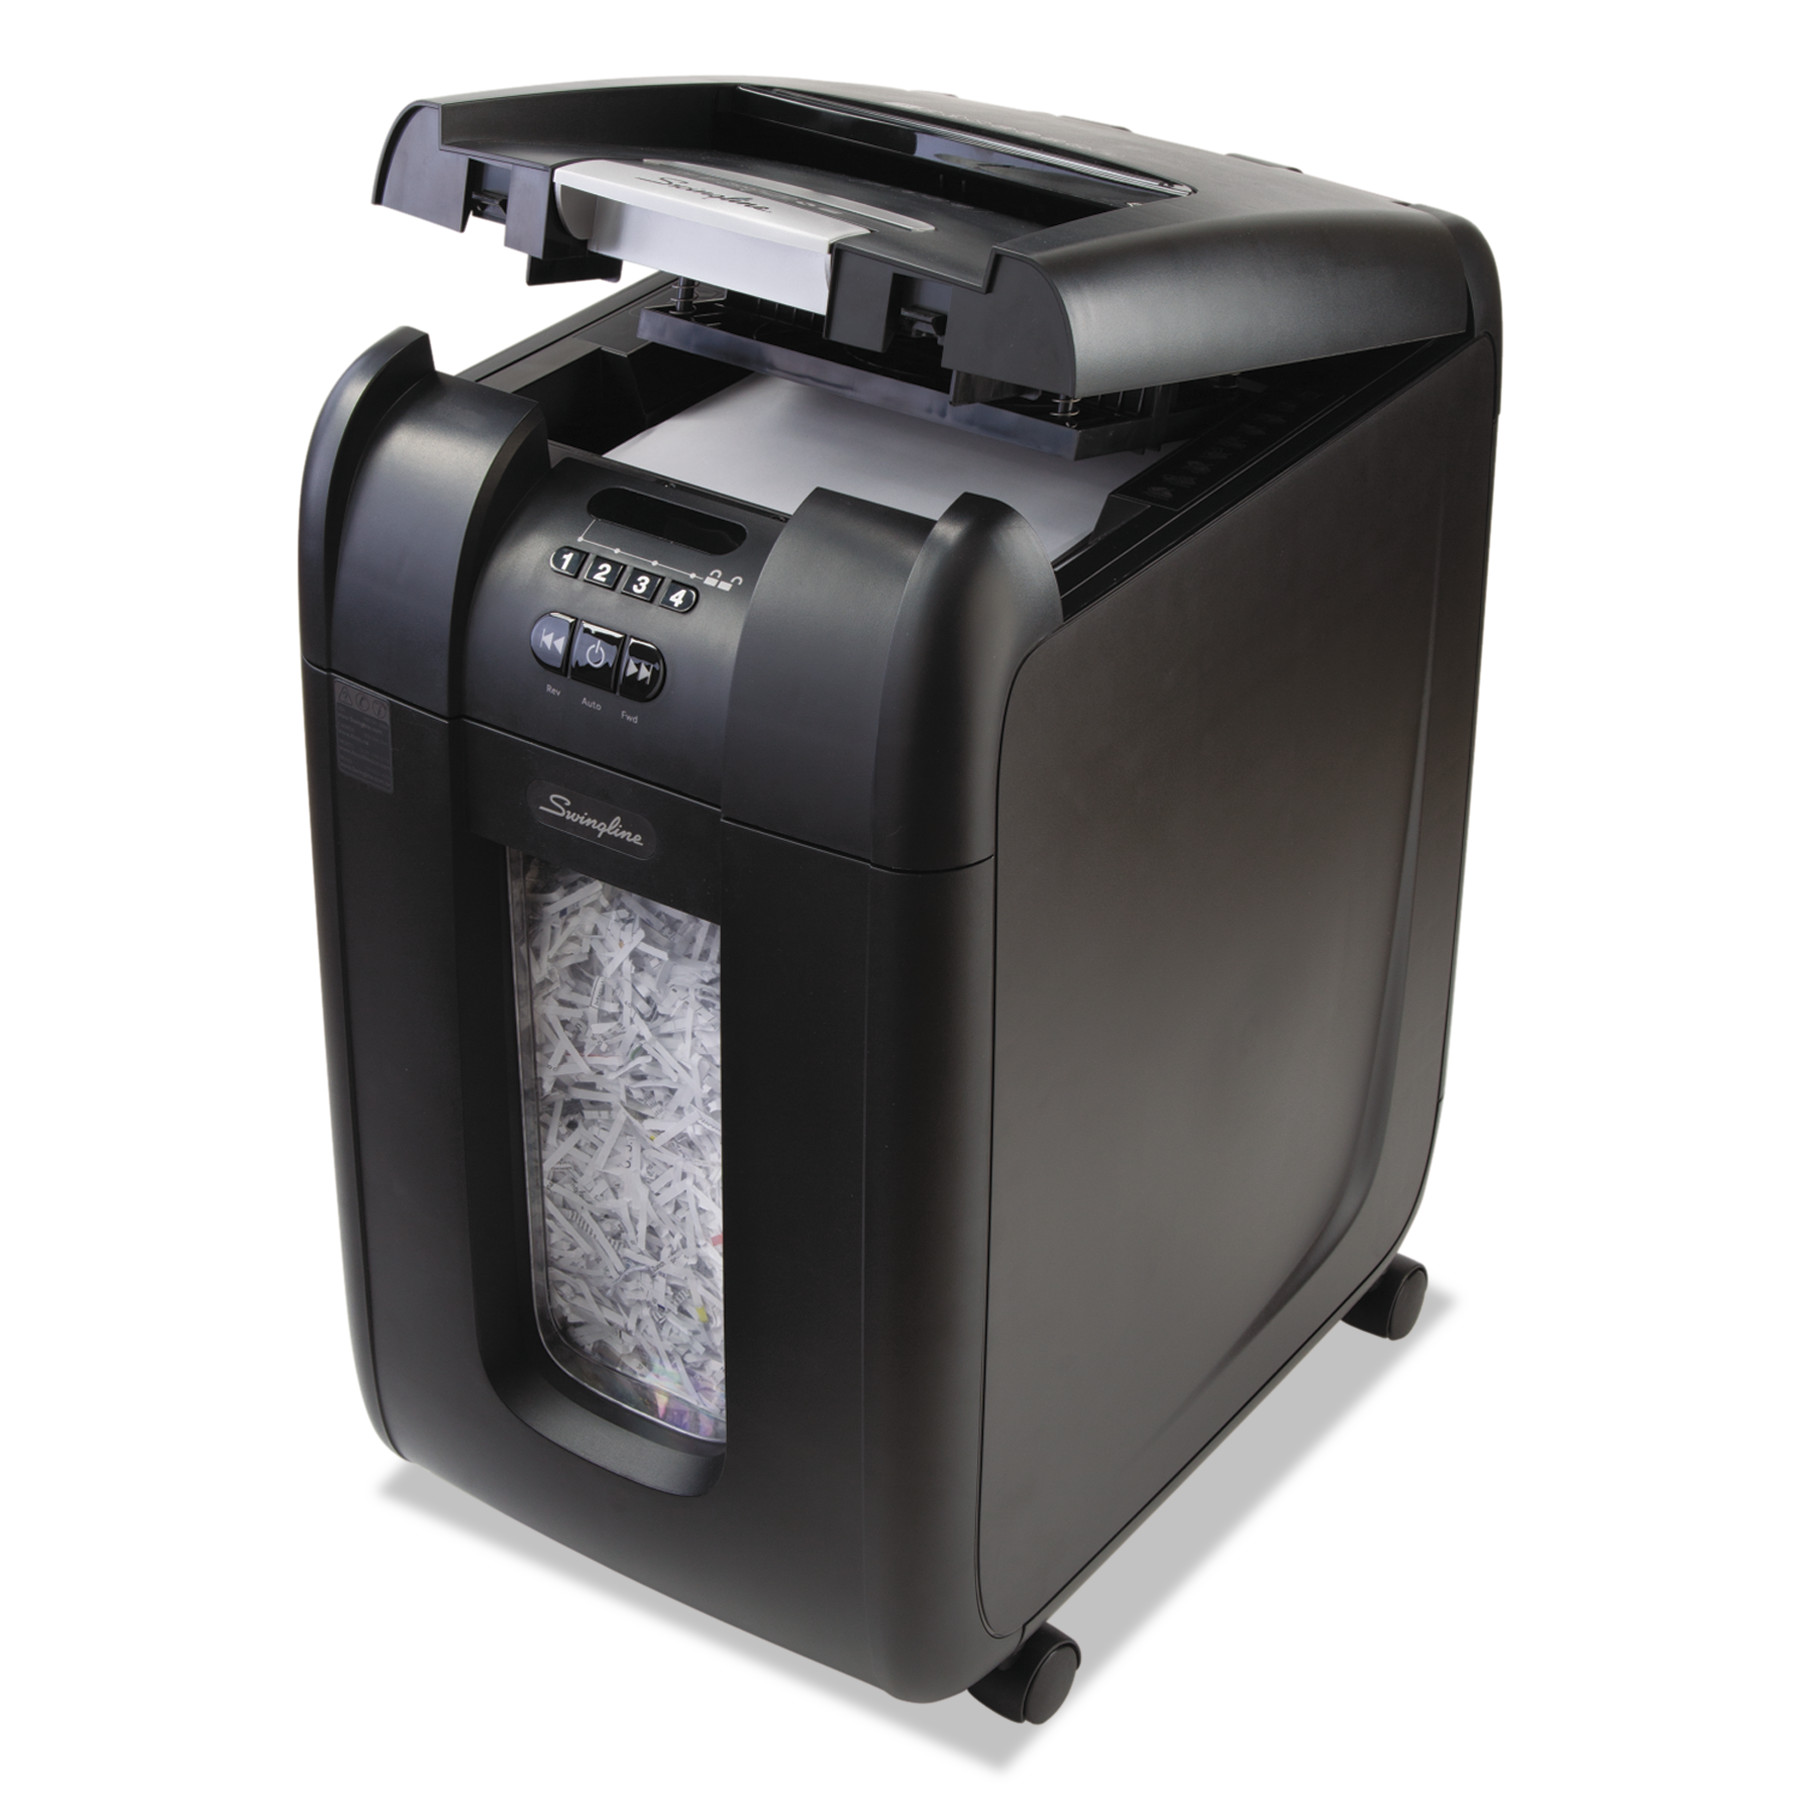 Swingline Stack-and-Shred 300XL Auto Feed Super Cross-Cut Shredder Value Pack, 300 Sheets